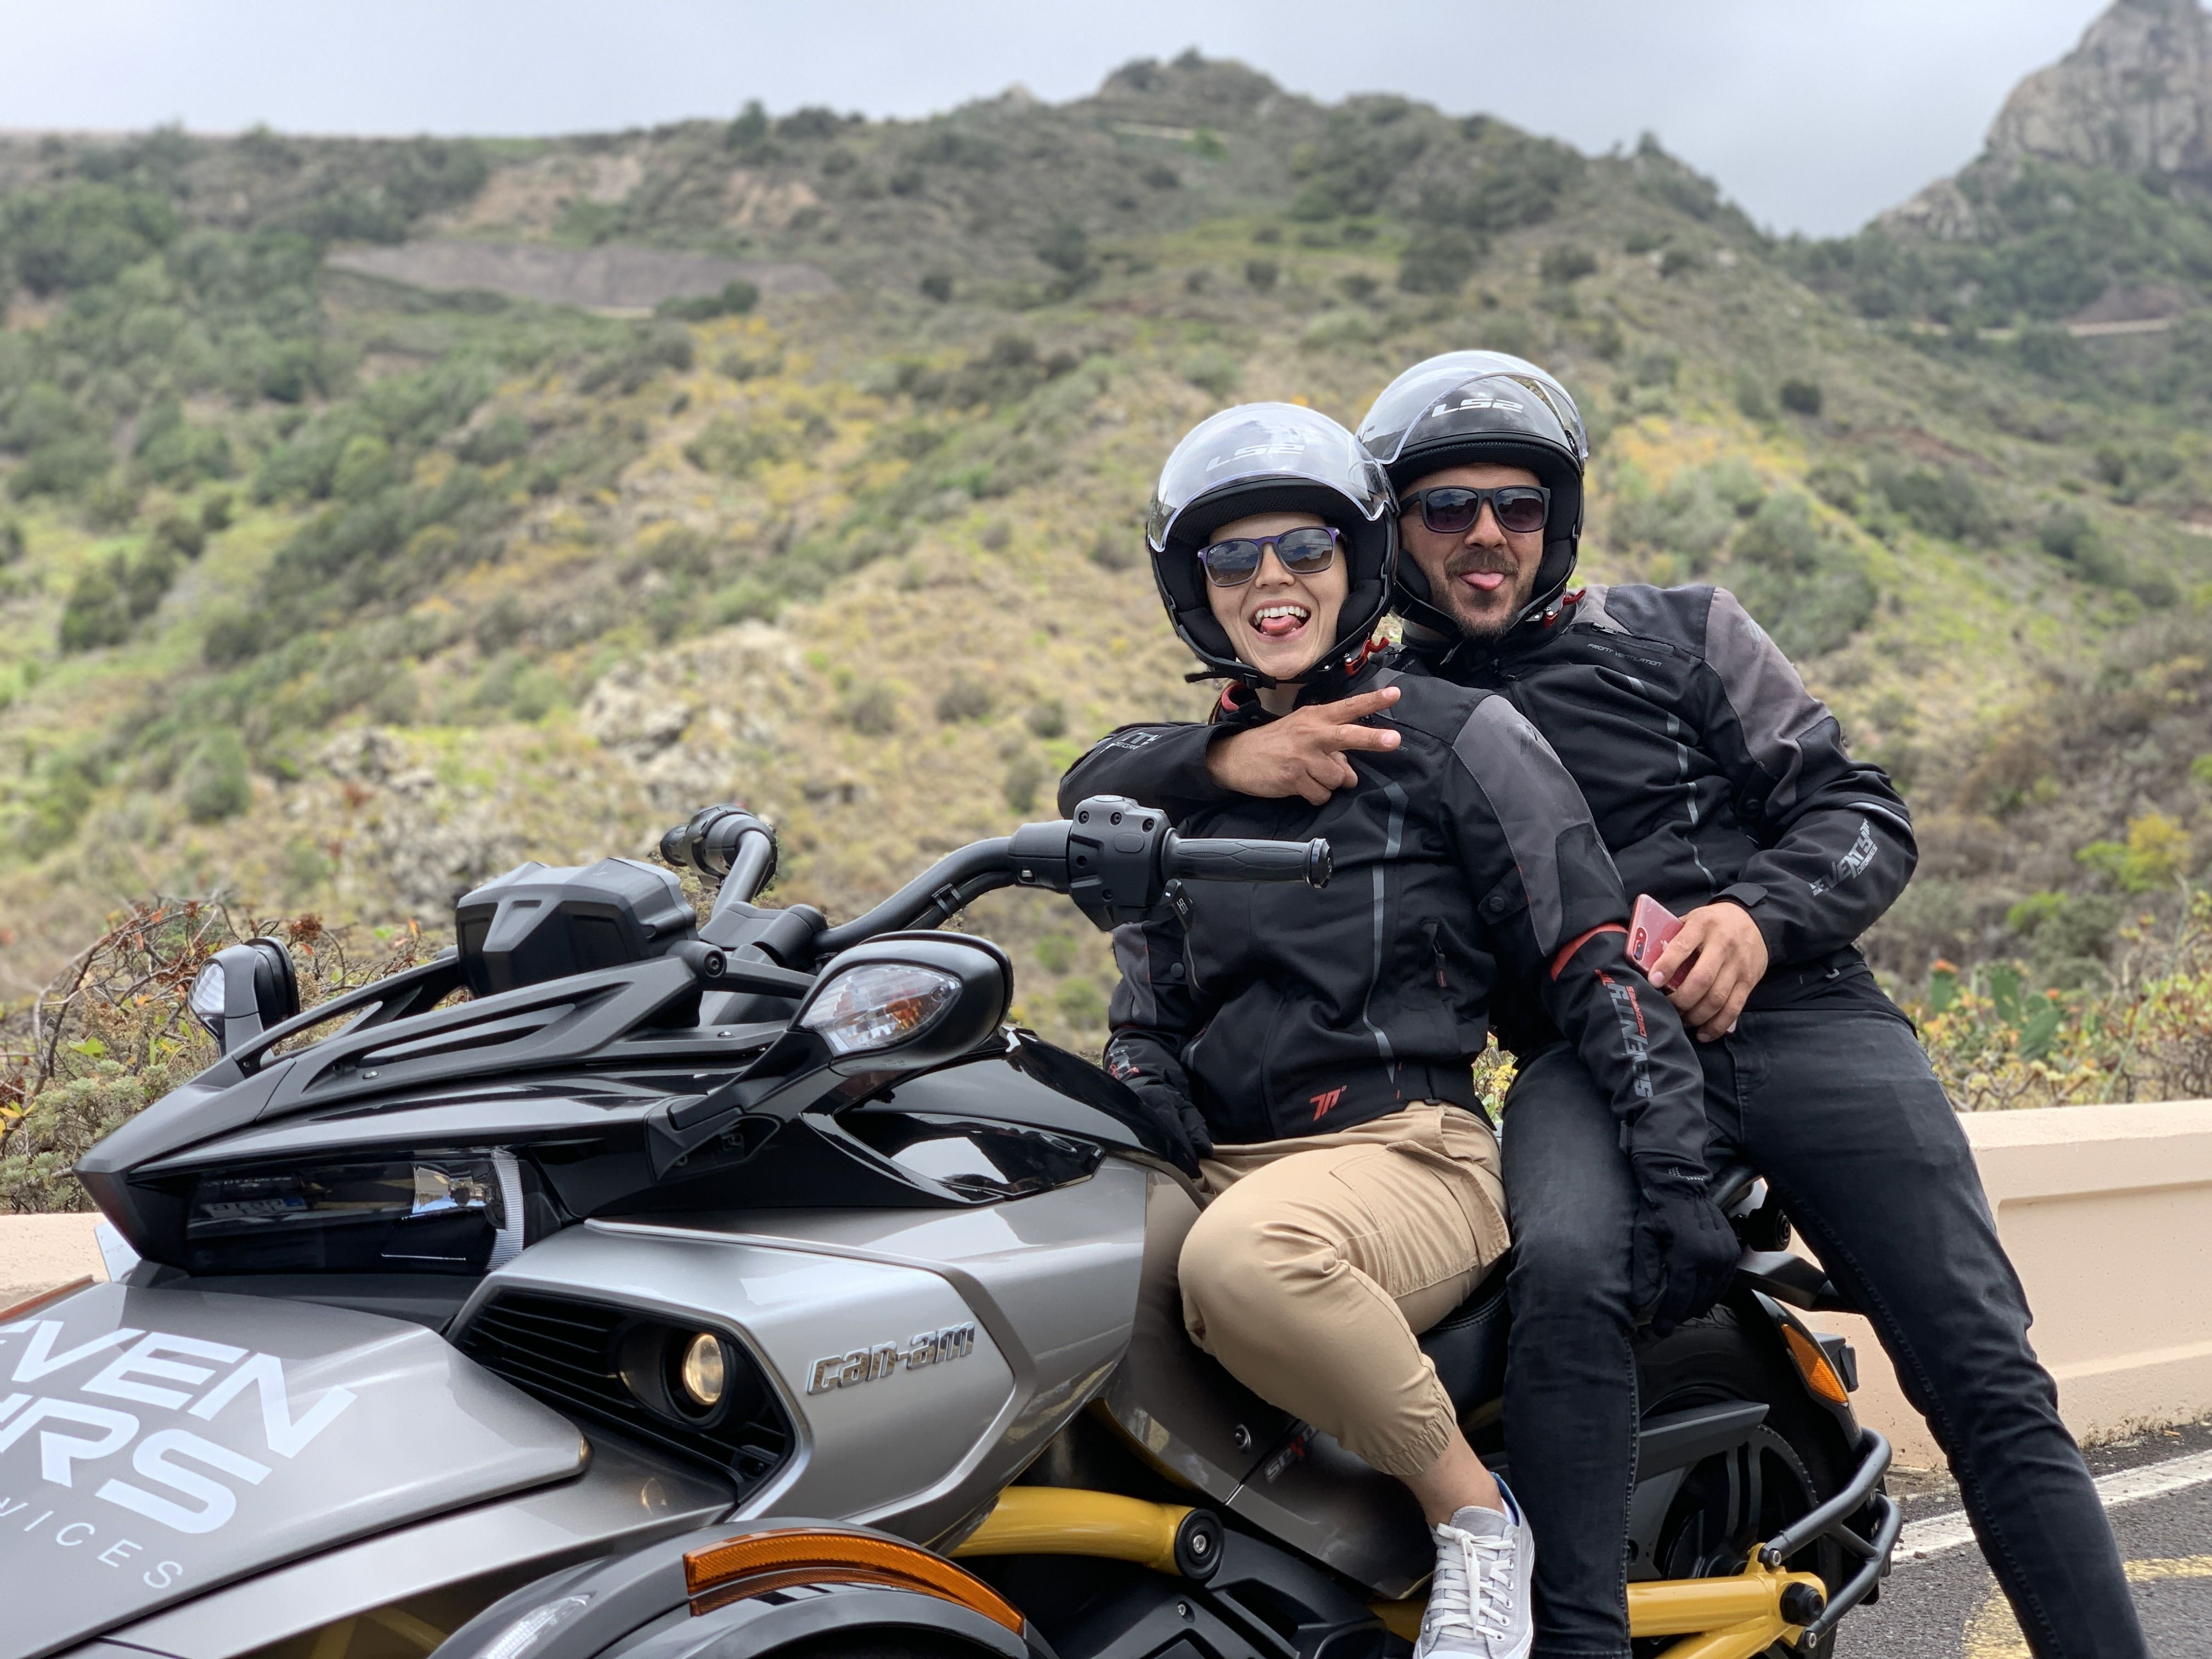 Motorcycle tours in Tenerife